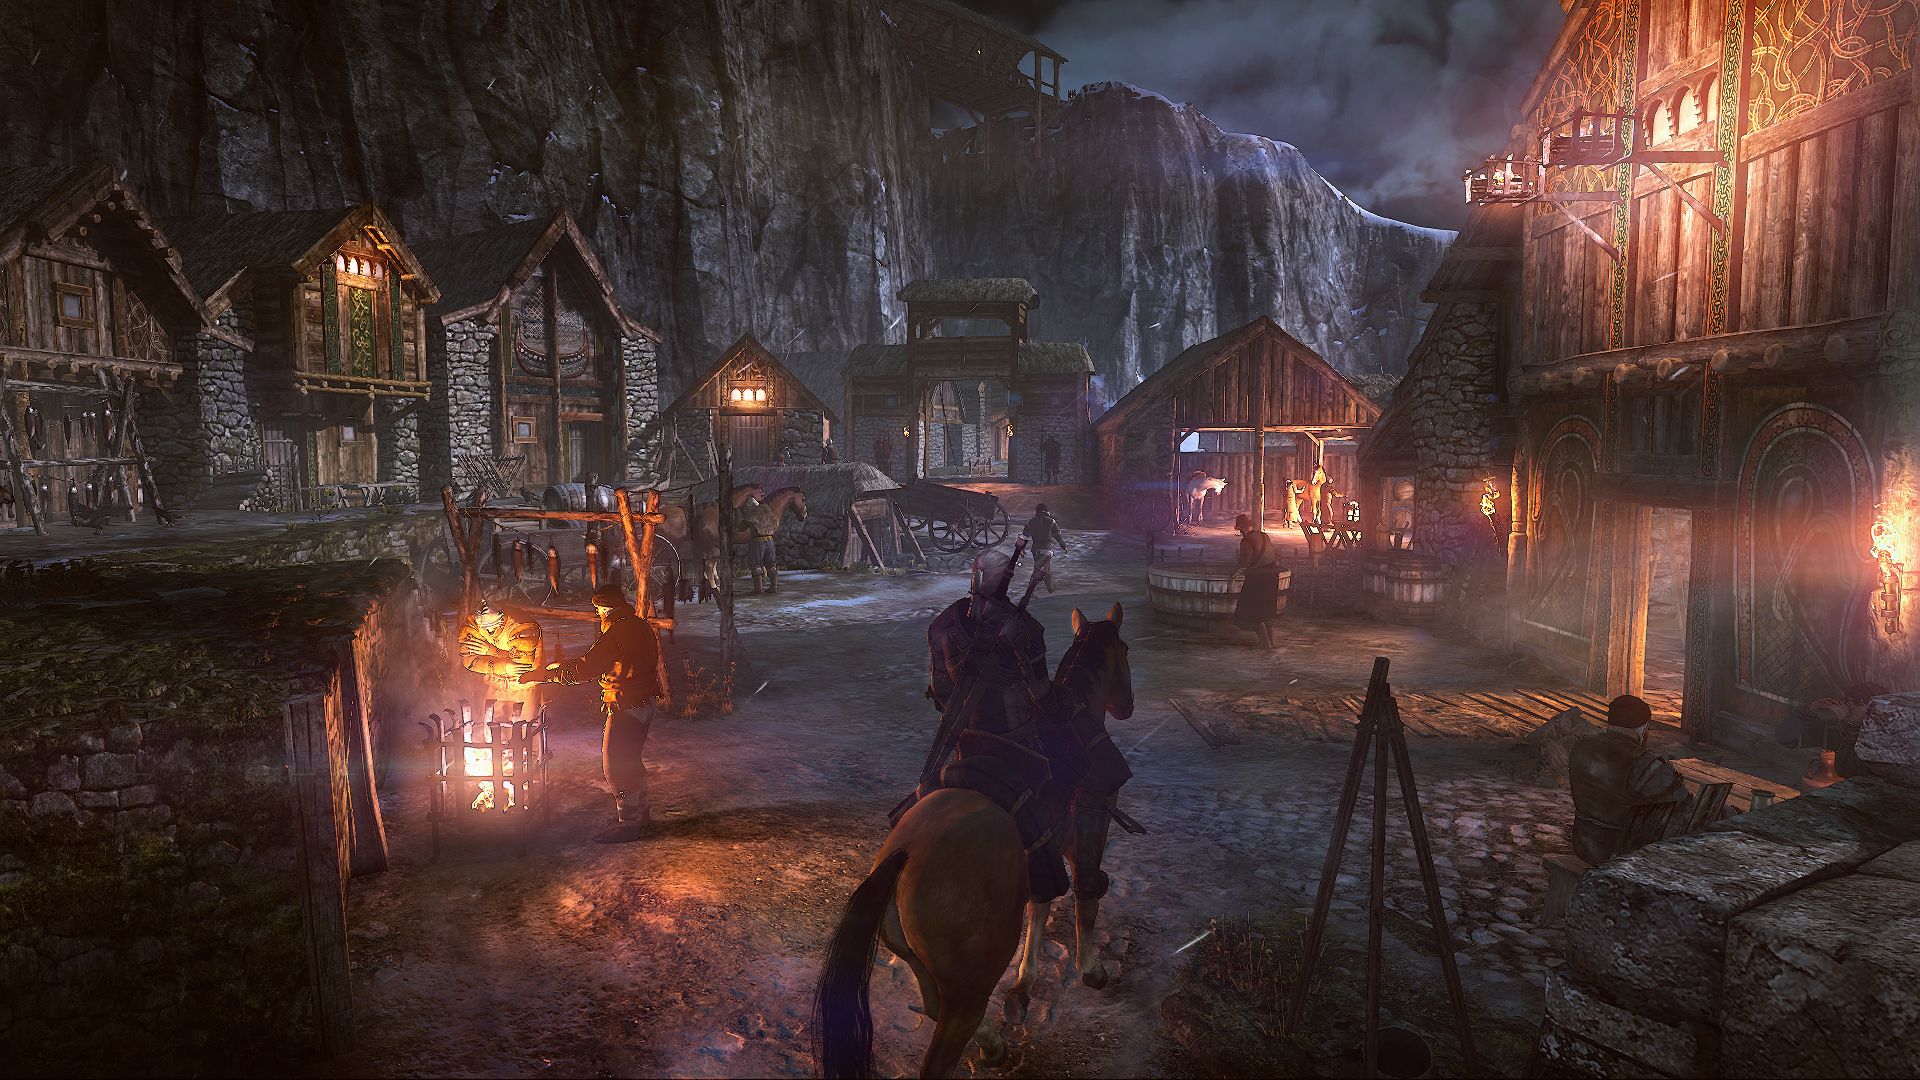 Game Witcher 3: how to get to Caer Morhen. Passage and recommendations 96